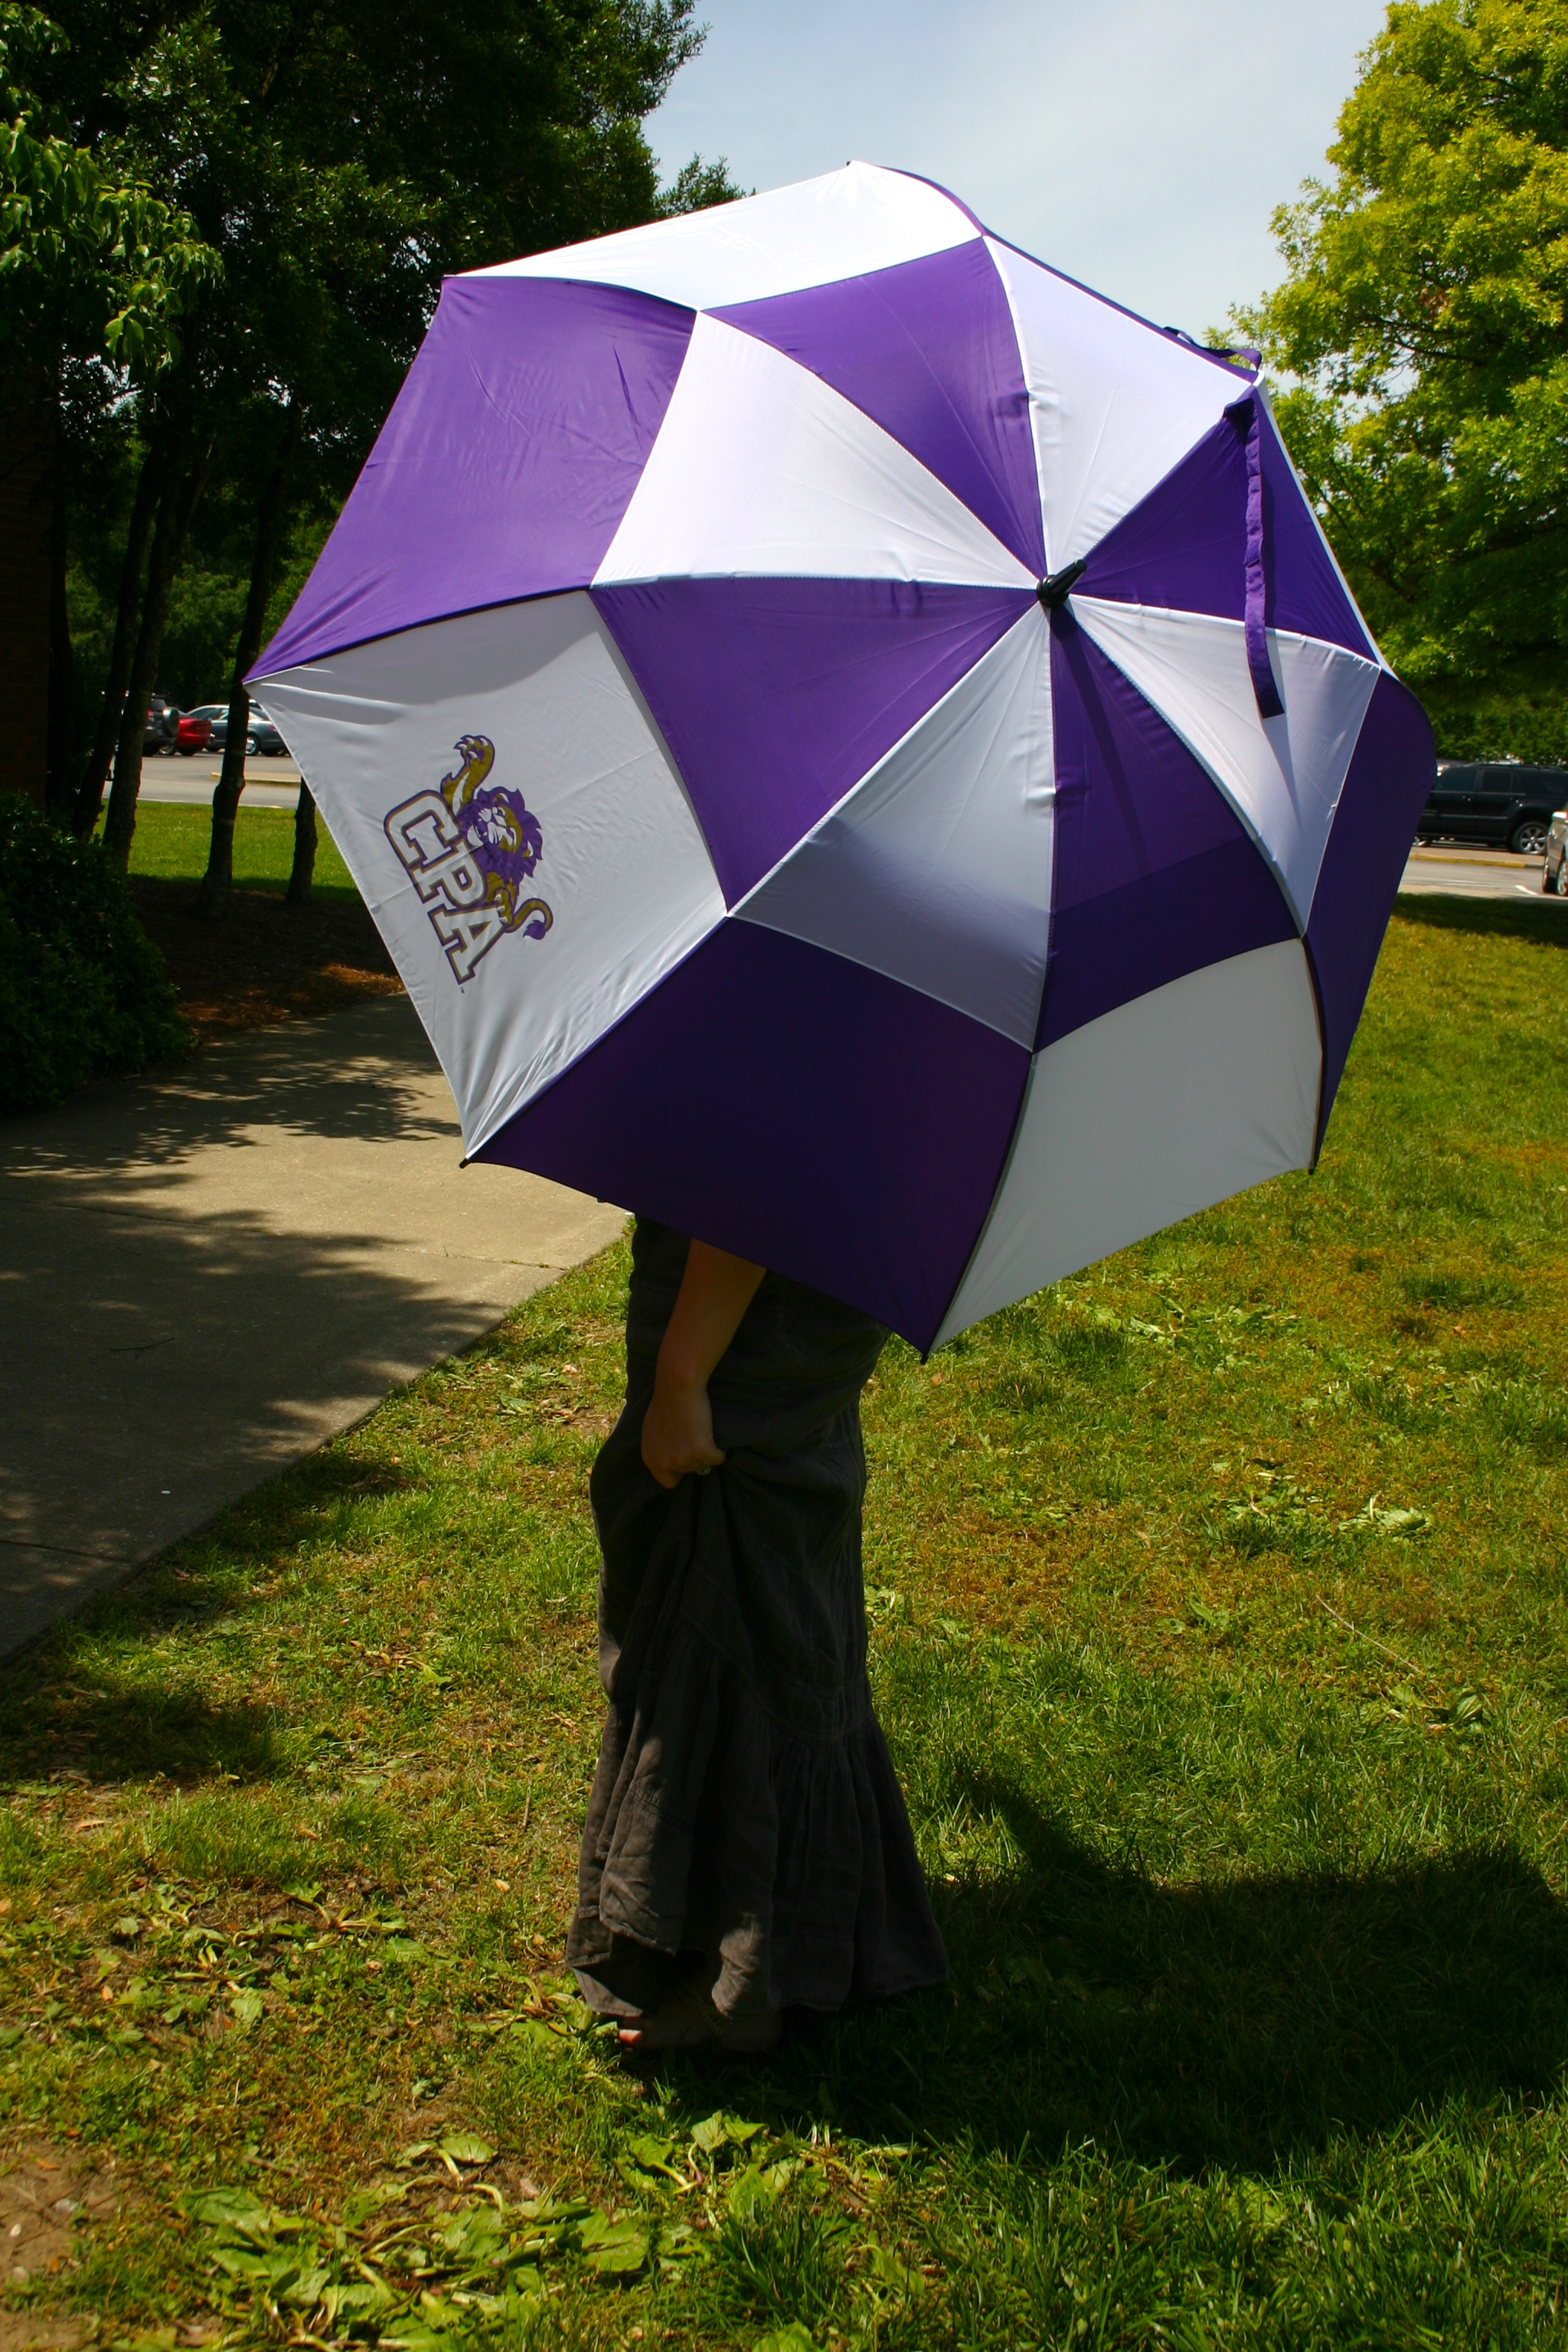 roar store item_umbrella - roar store item umbrella